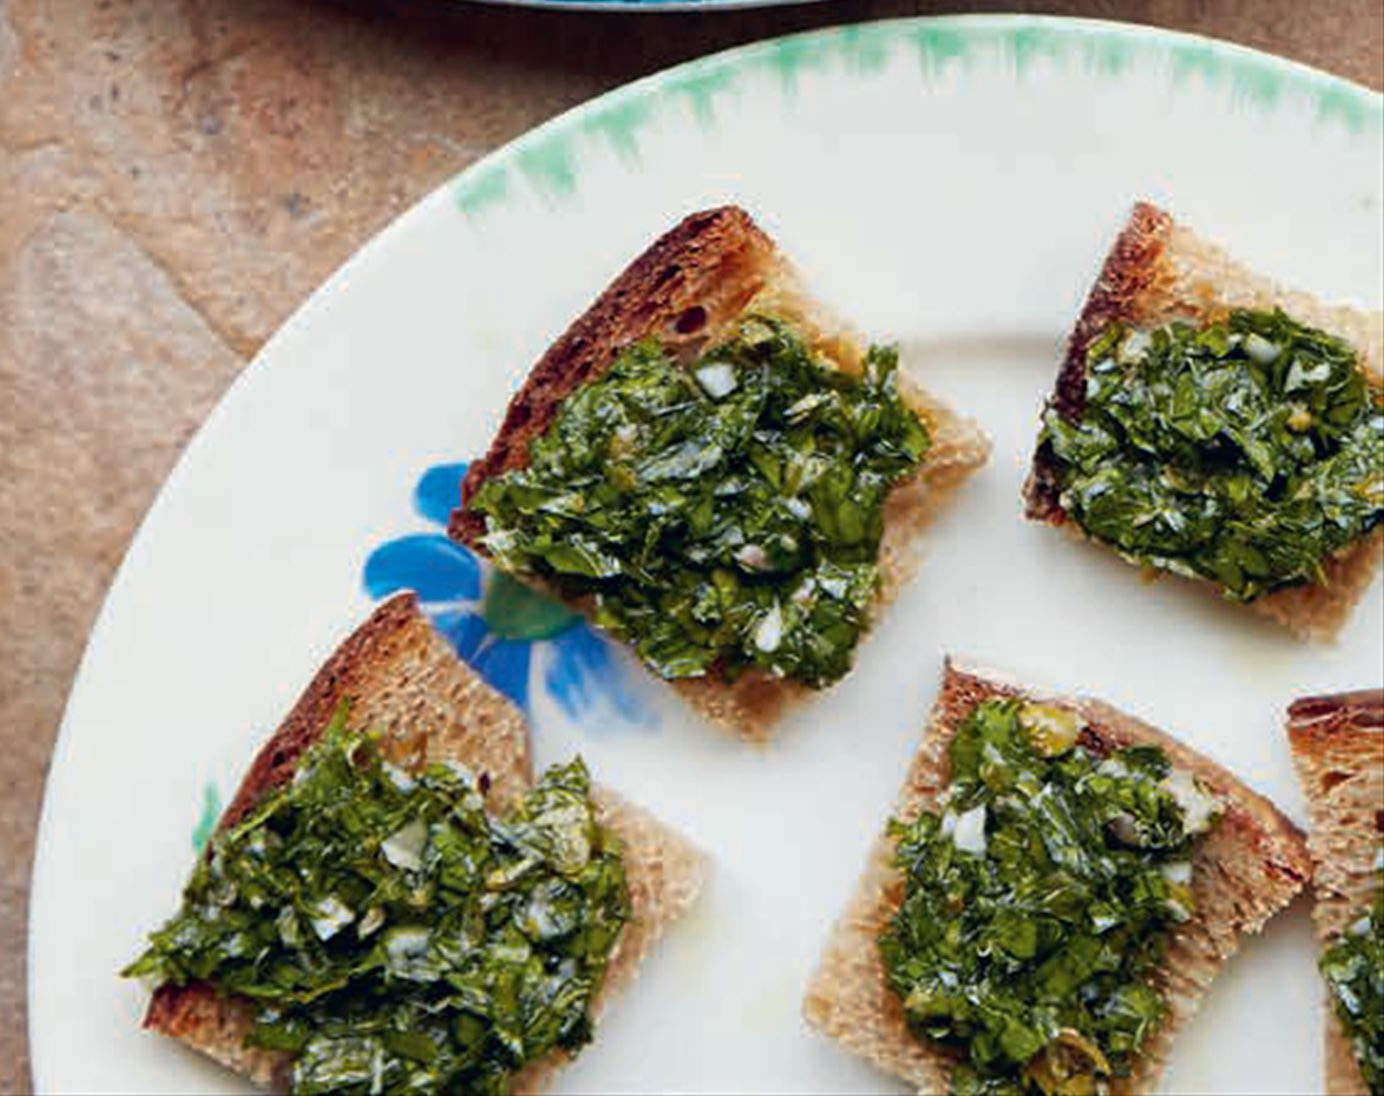 Toasted bread with green sauce